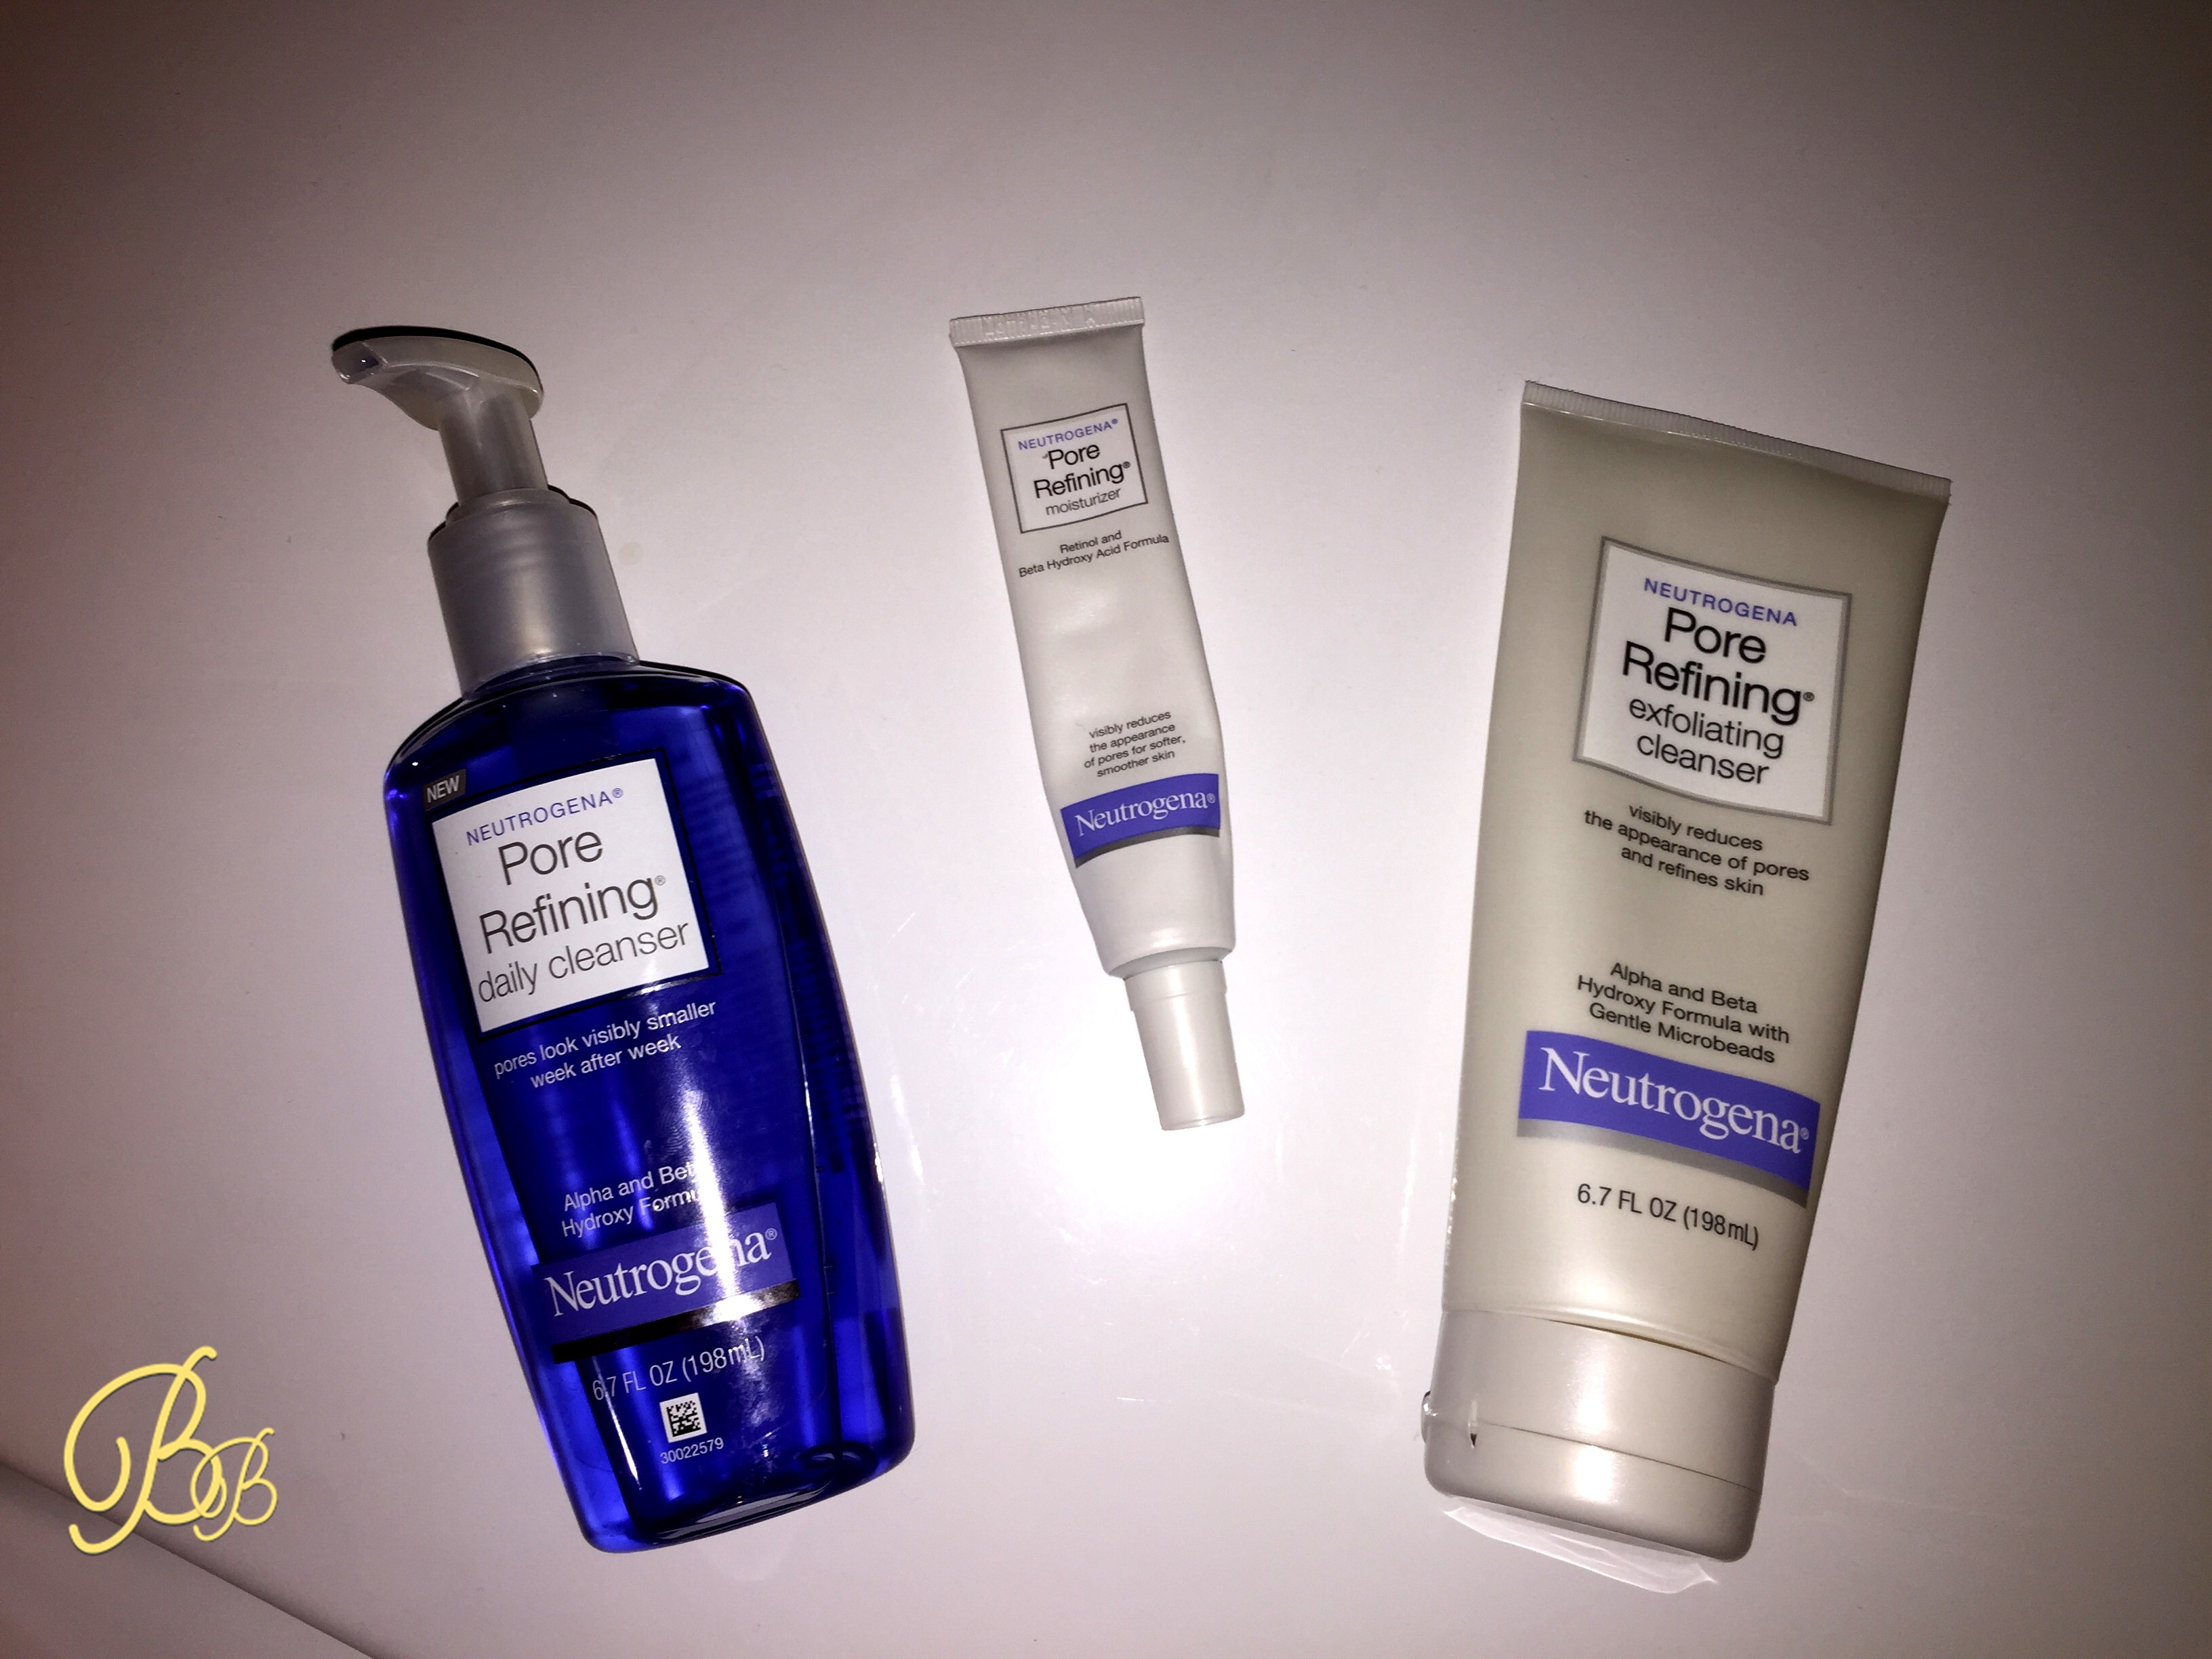 Neutrogena Pore Refining product line {review} - Becky Boricua